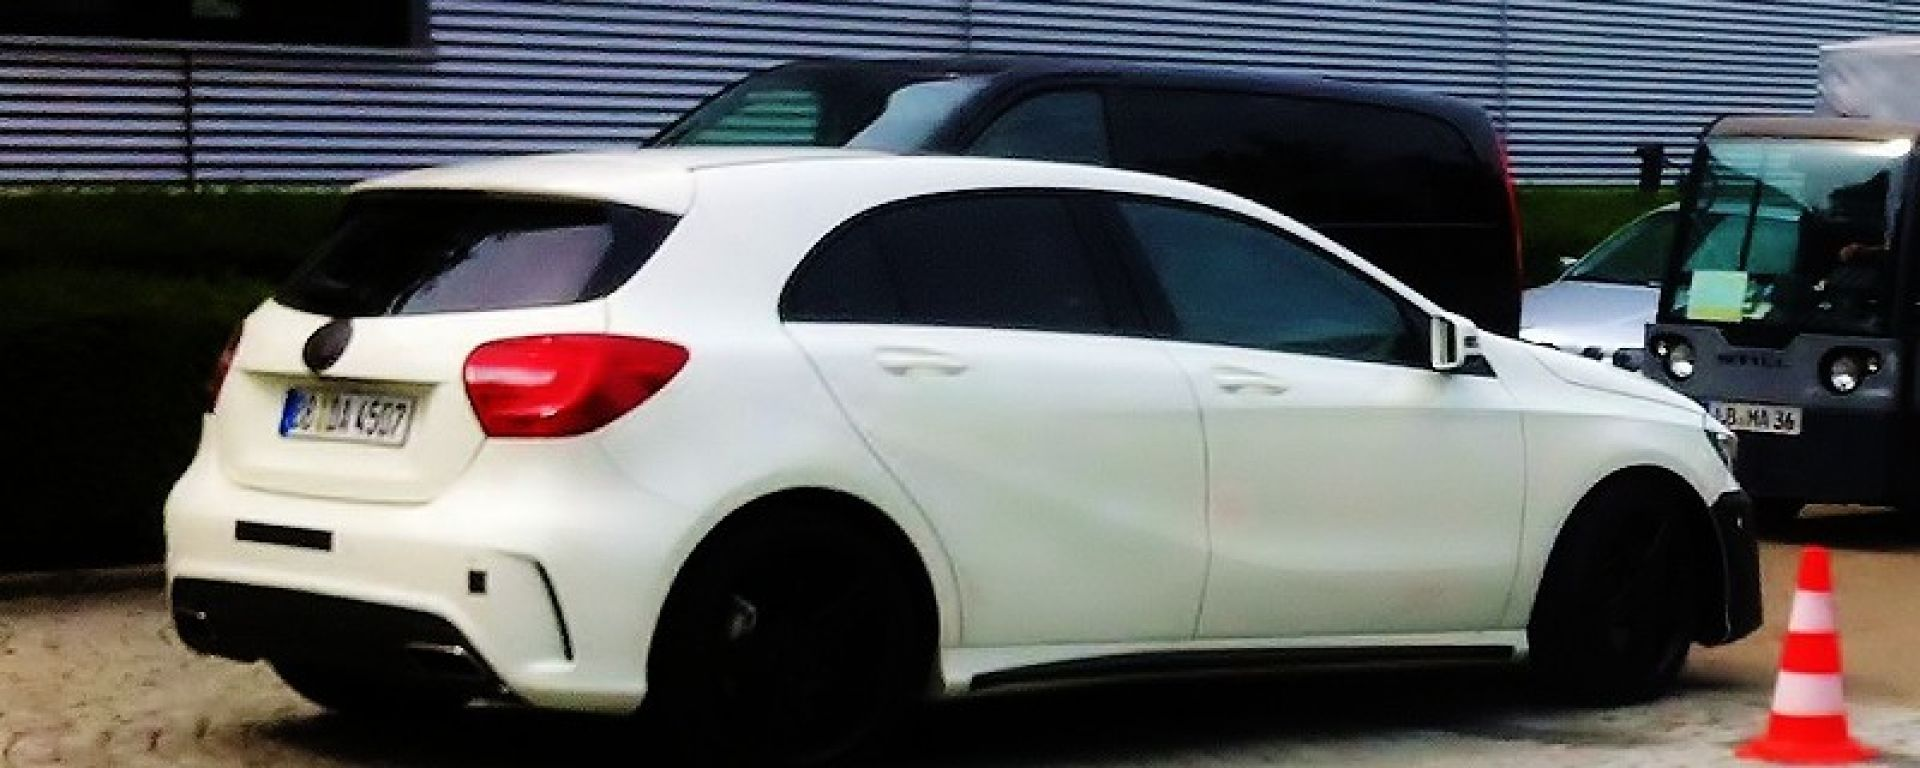 Mercedes A 45 AMG, nuove foto spia